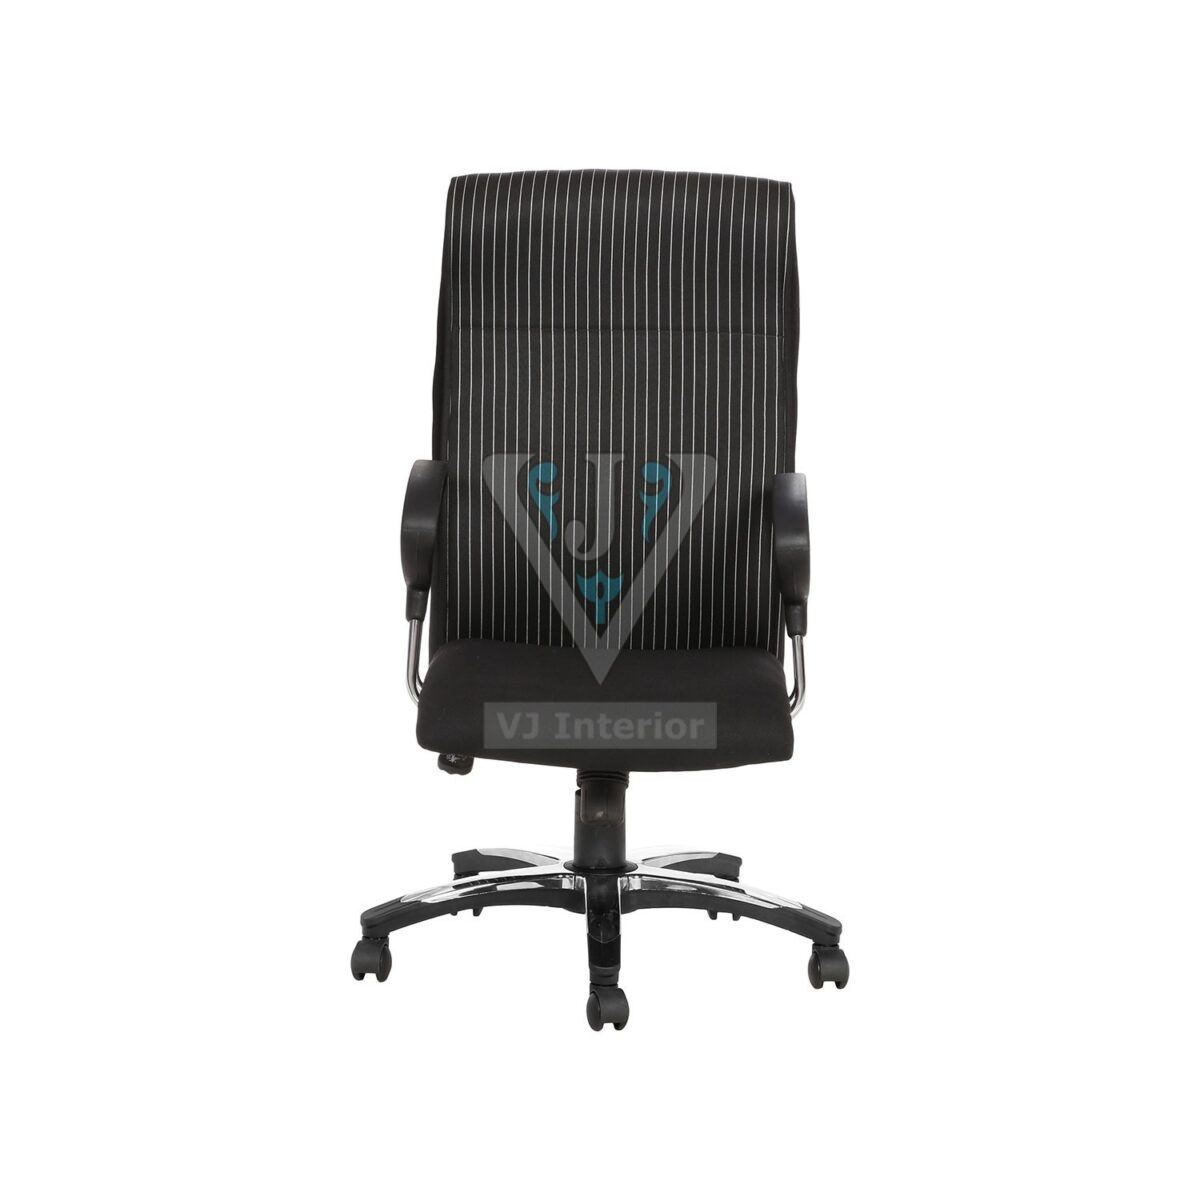 THE RAYA HB EXECUTIVE CHAIR BLACK WITH WHITE STRIPES